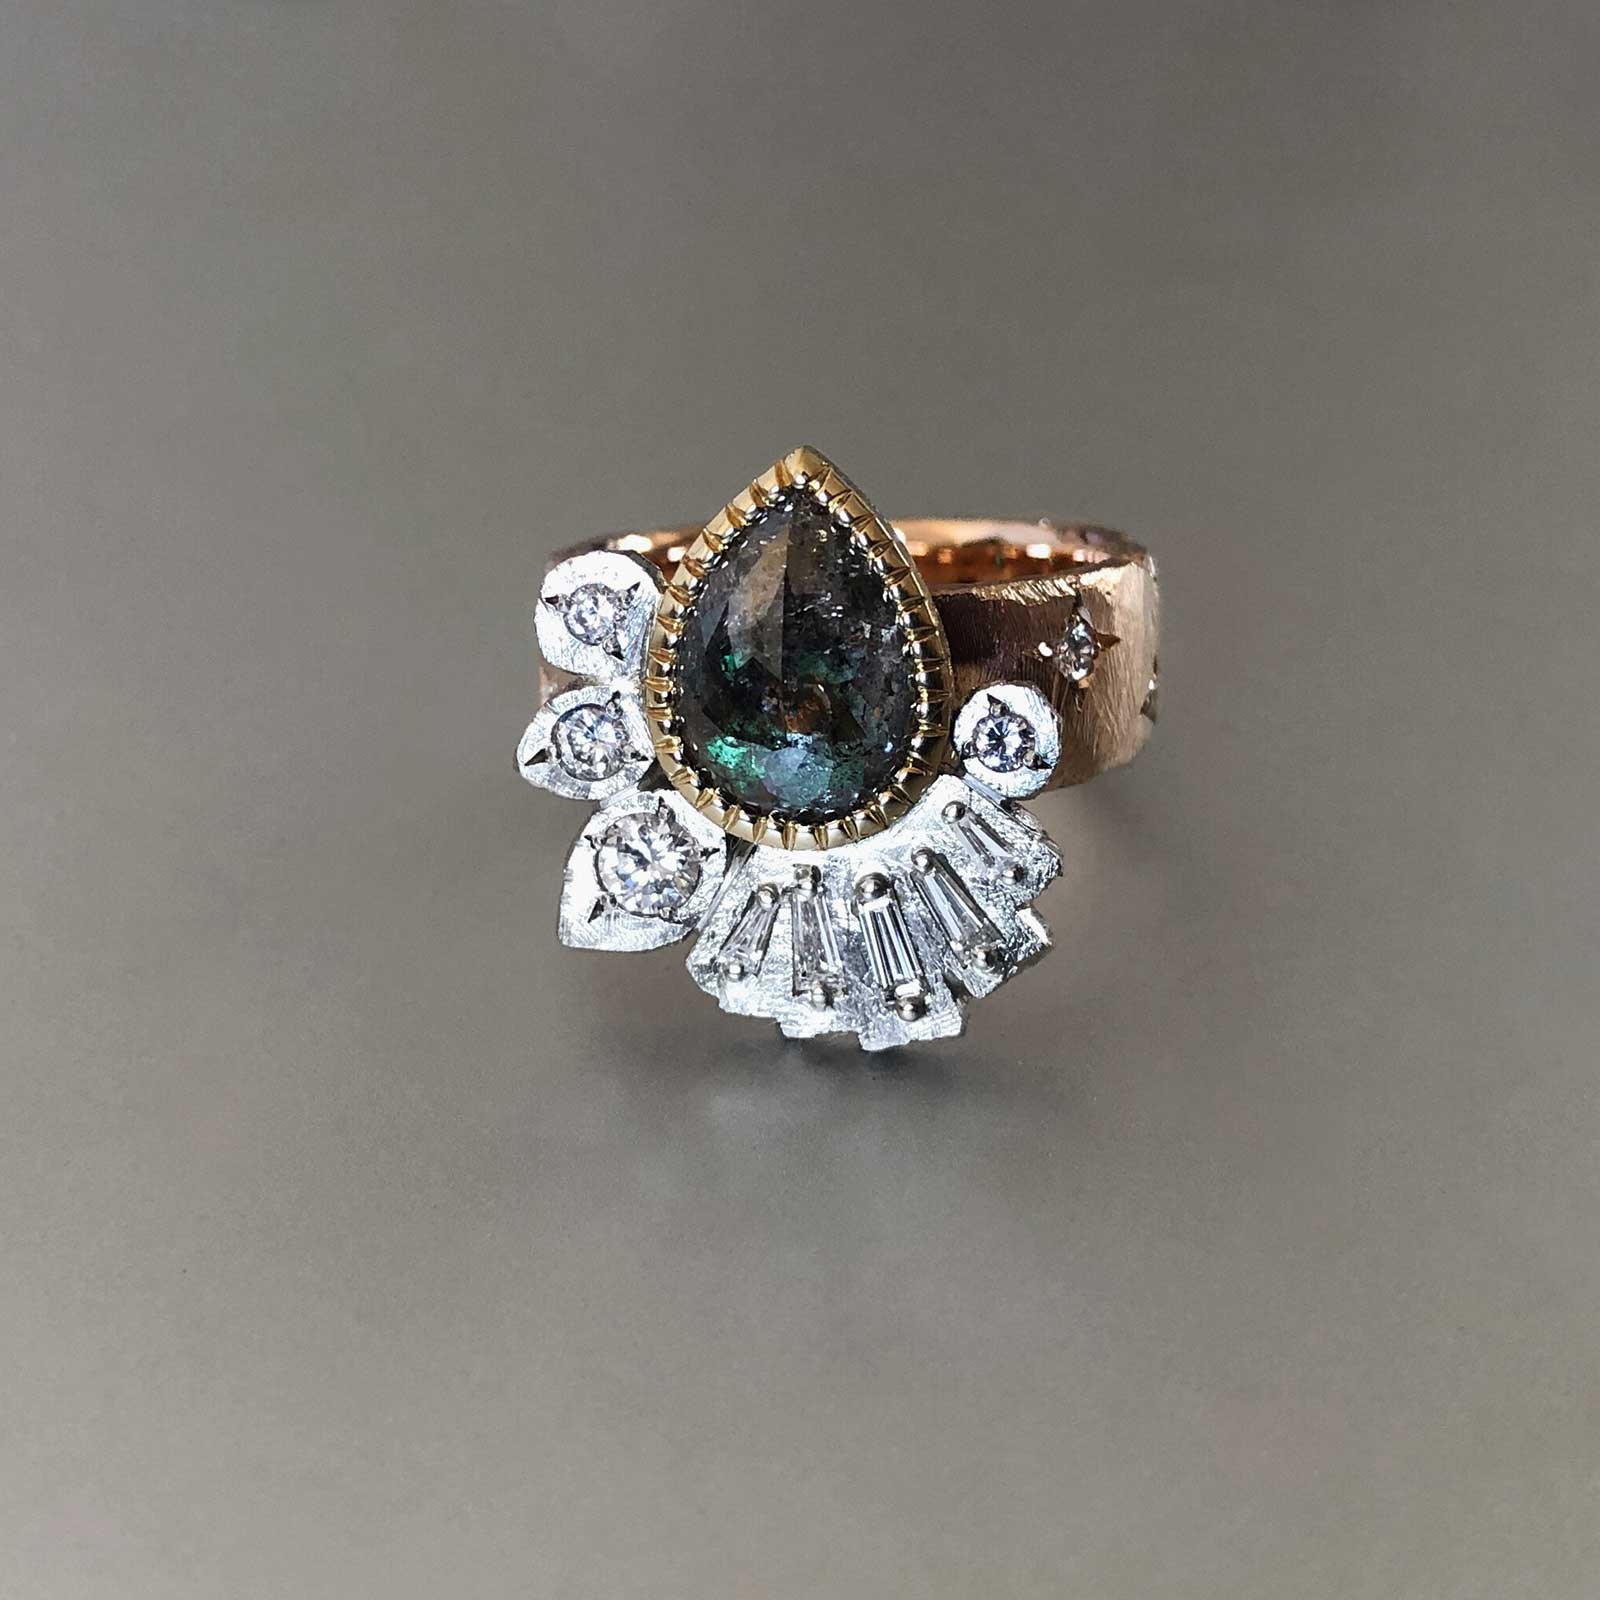 Rose gold, white gold, yellow gold salt and pepper diamond heirloom ring with star-set diamonds and an emerald